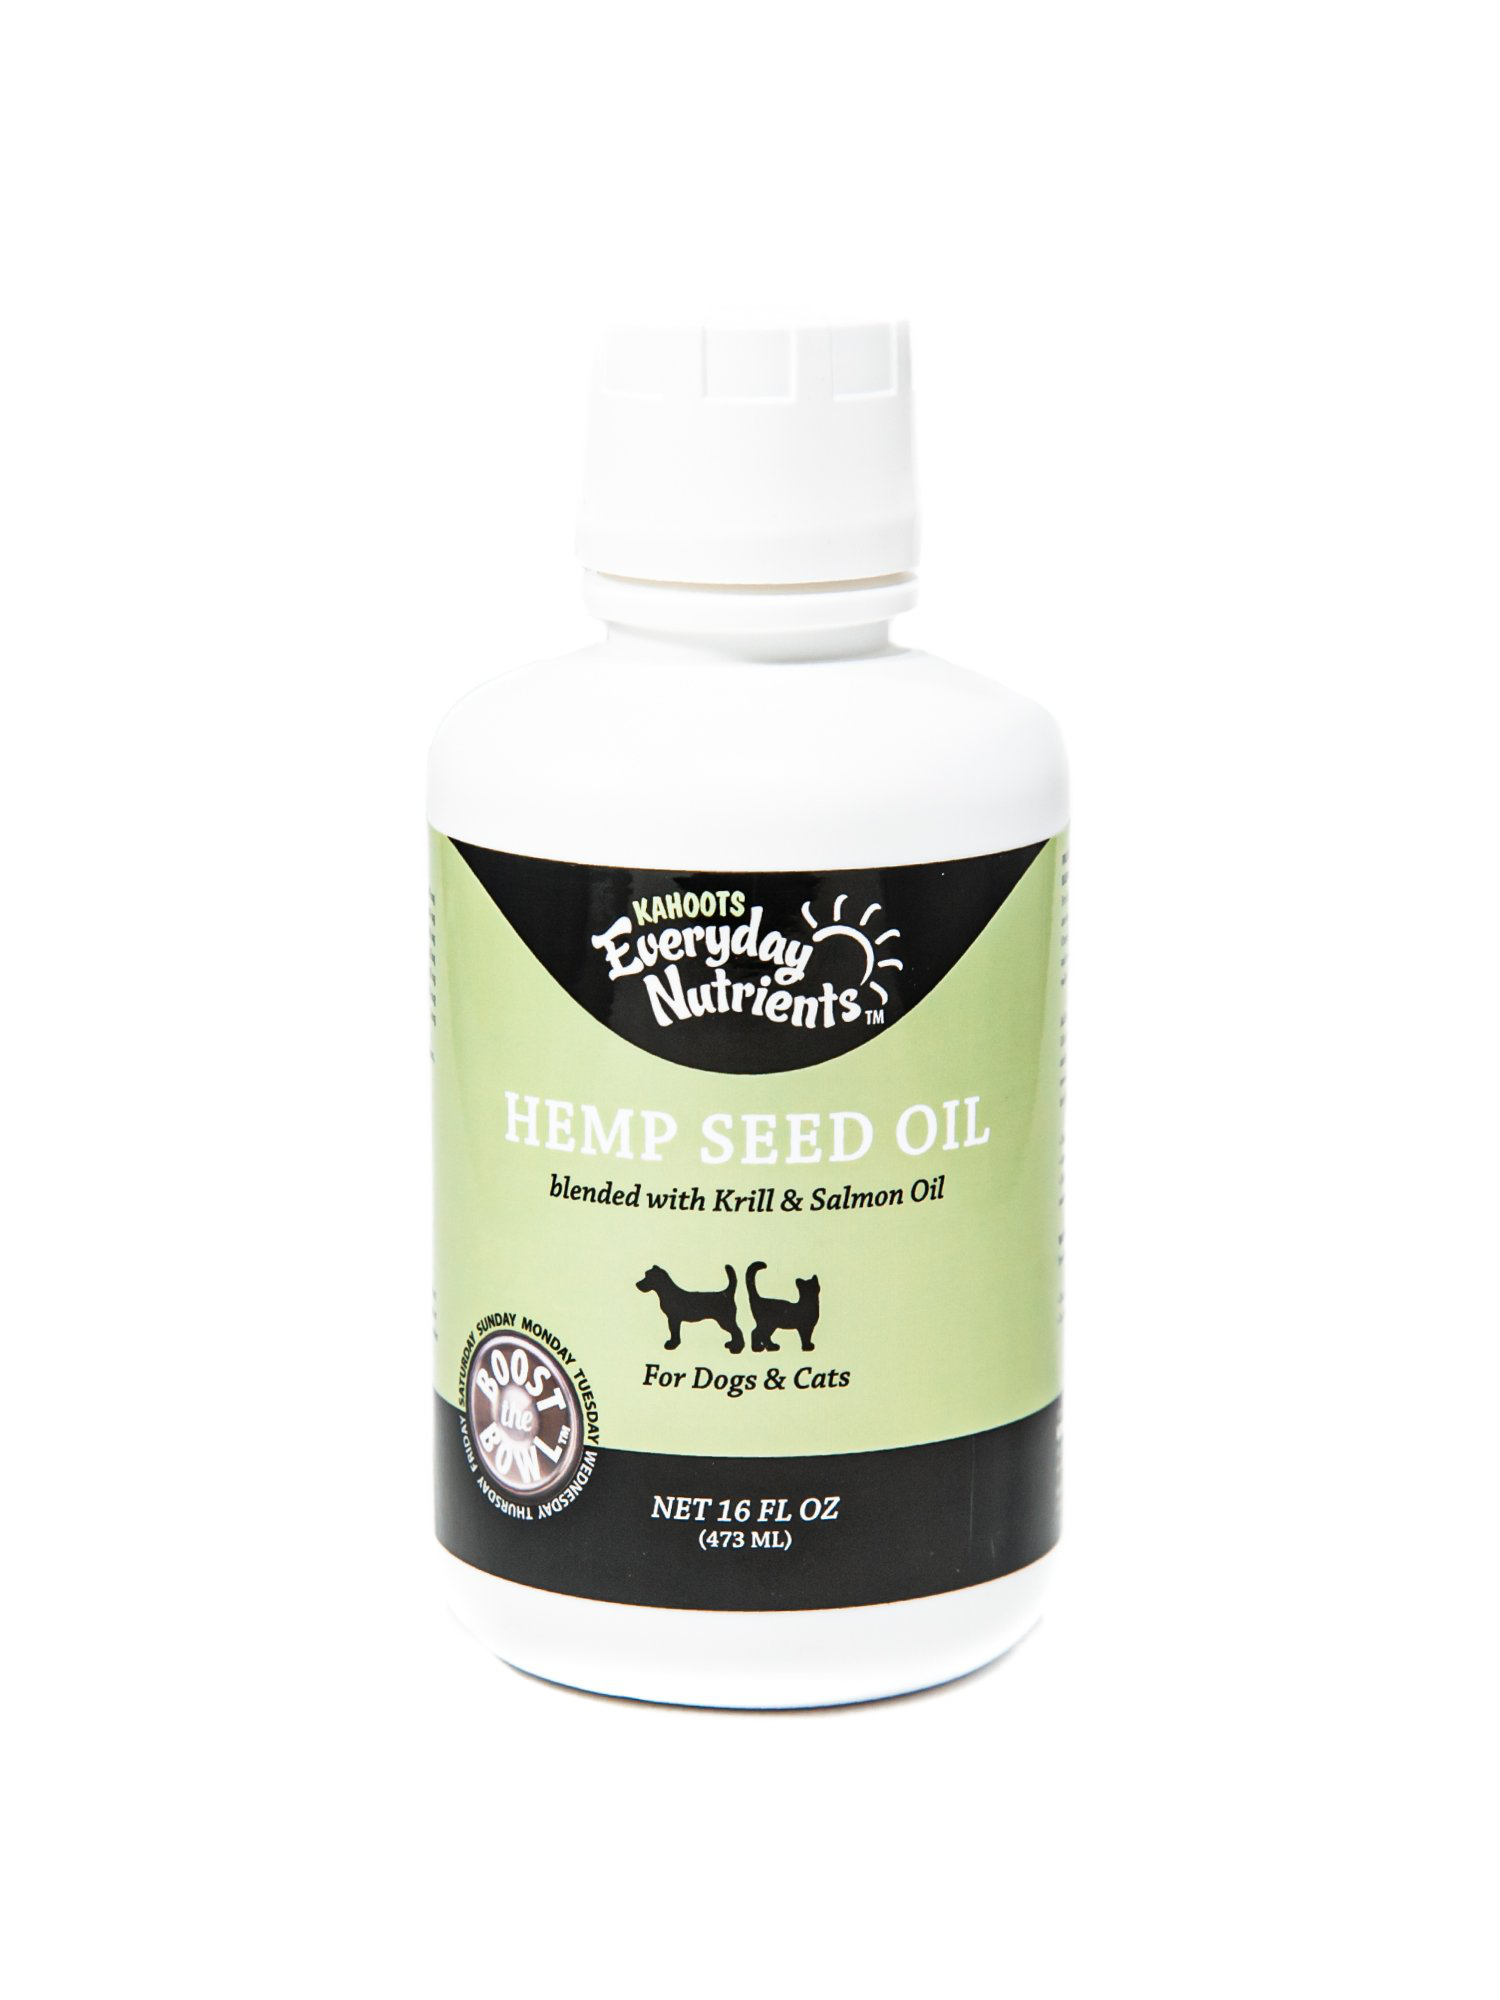 Hemp seed oil bottle. White bottle with a green label. Picture of dog and cat on label